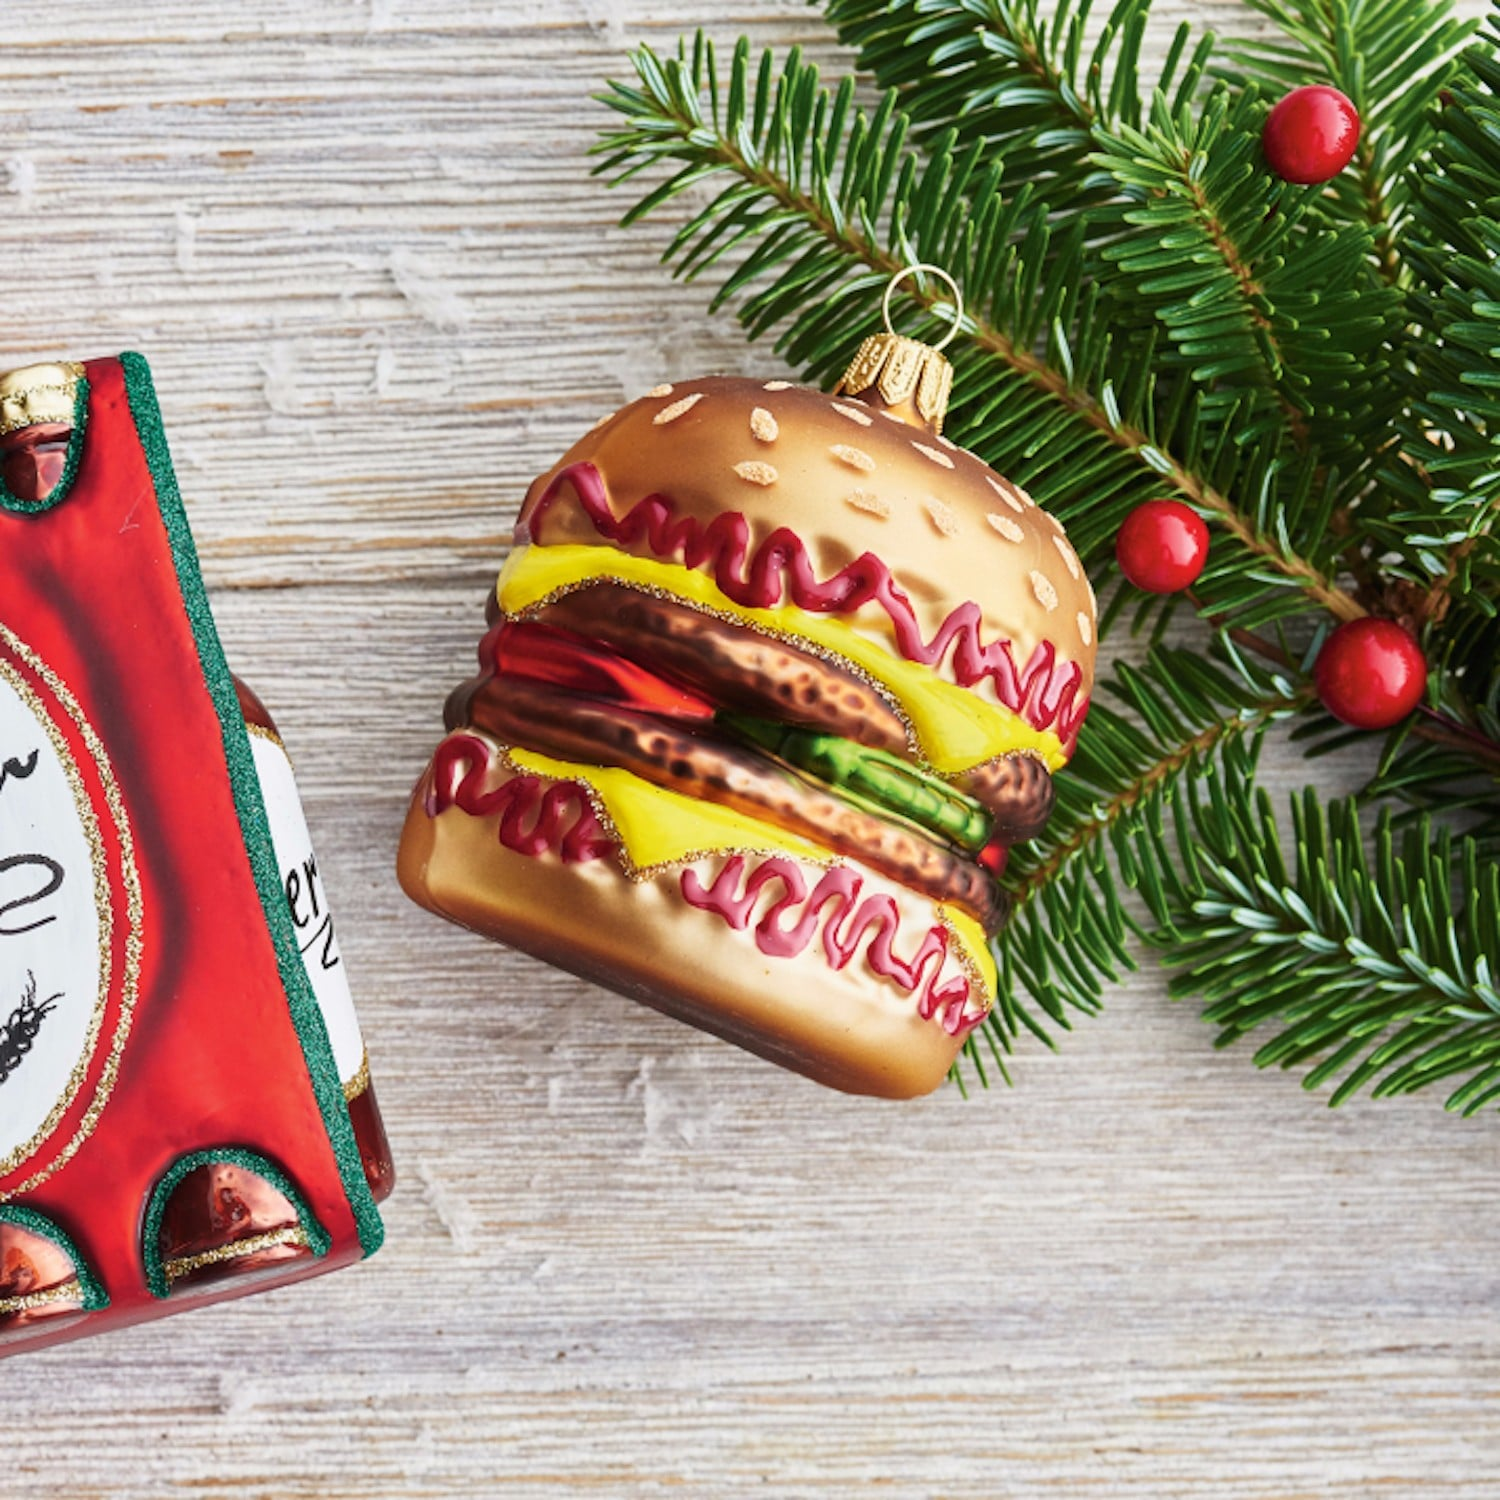 Food Themed Christmas Tree Ornaments Popsugar Food